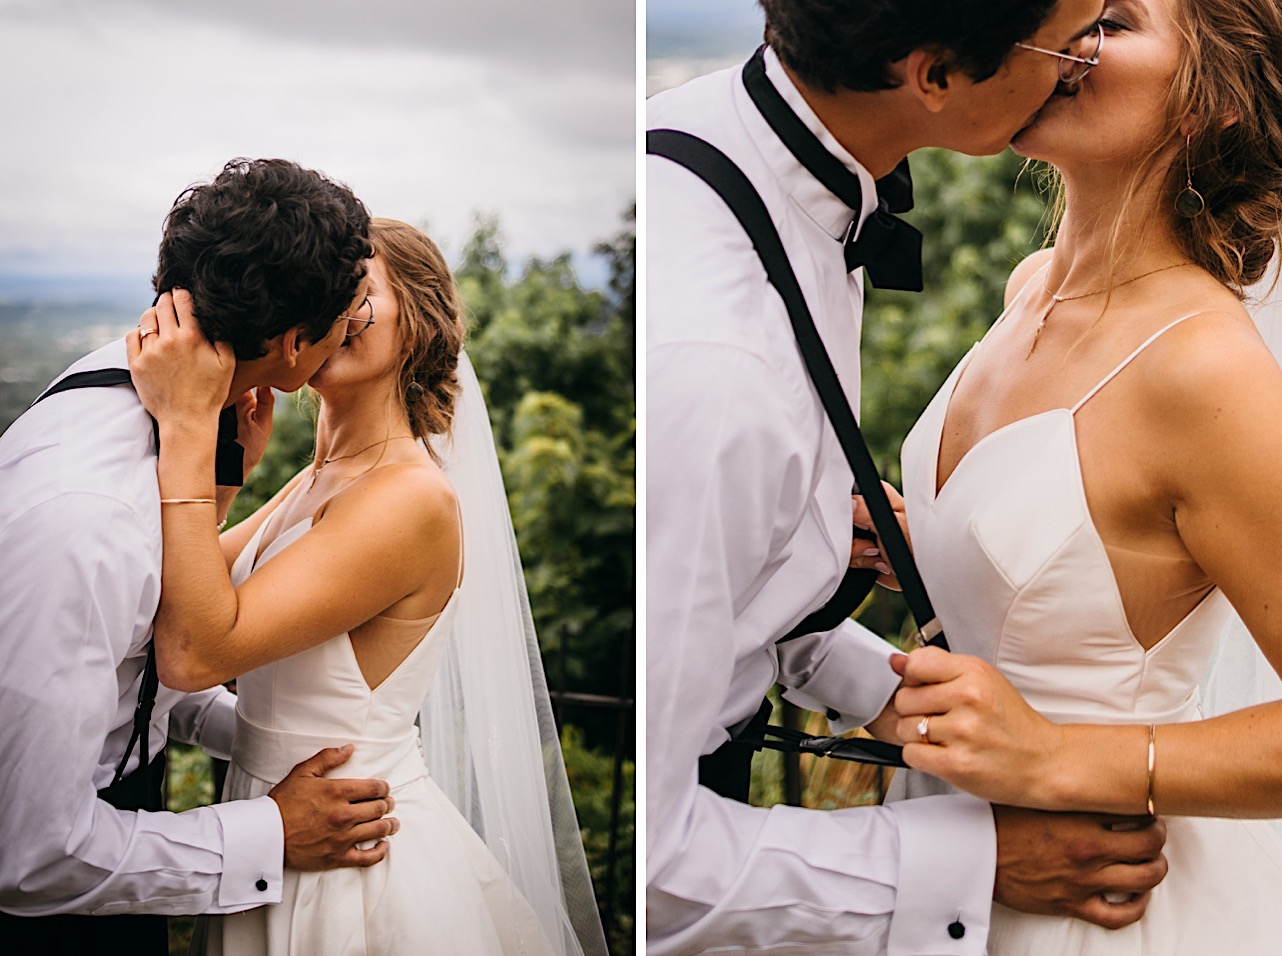 bride grabs grooms suspenders and pulls him close for a kiss as he puts his hands on her waist